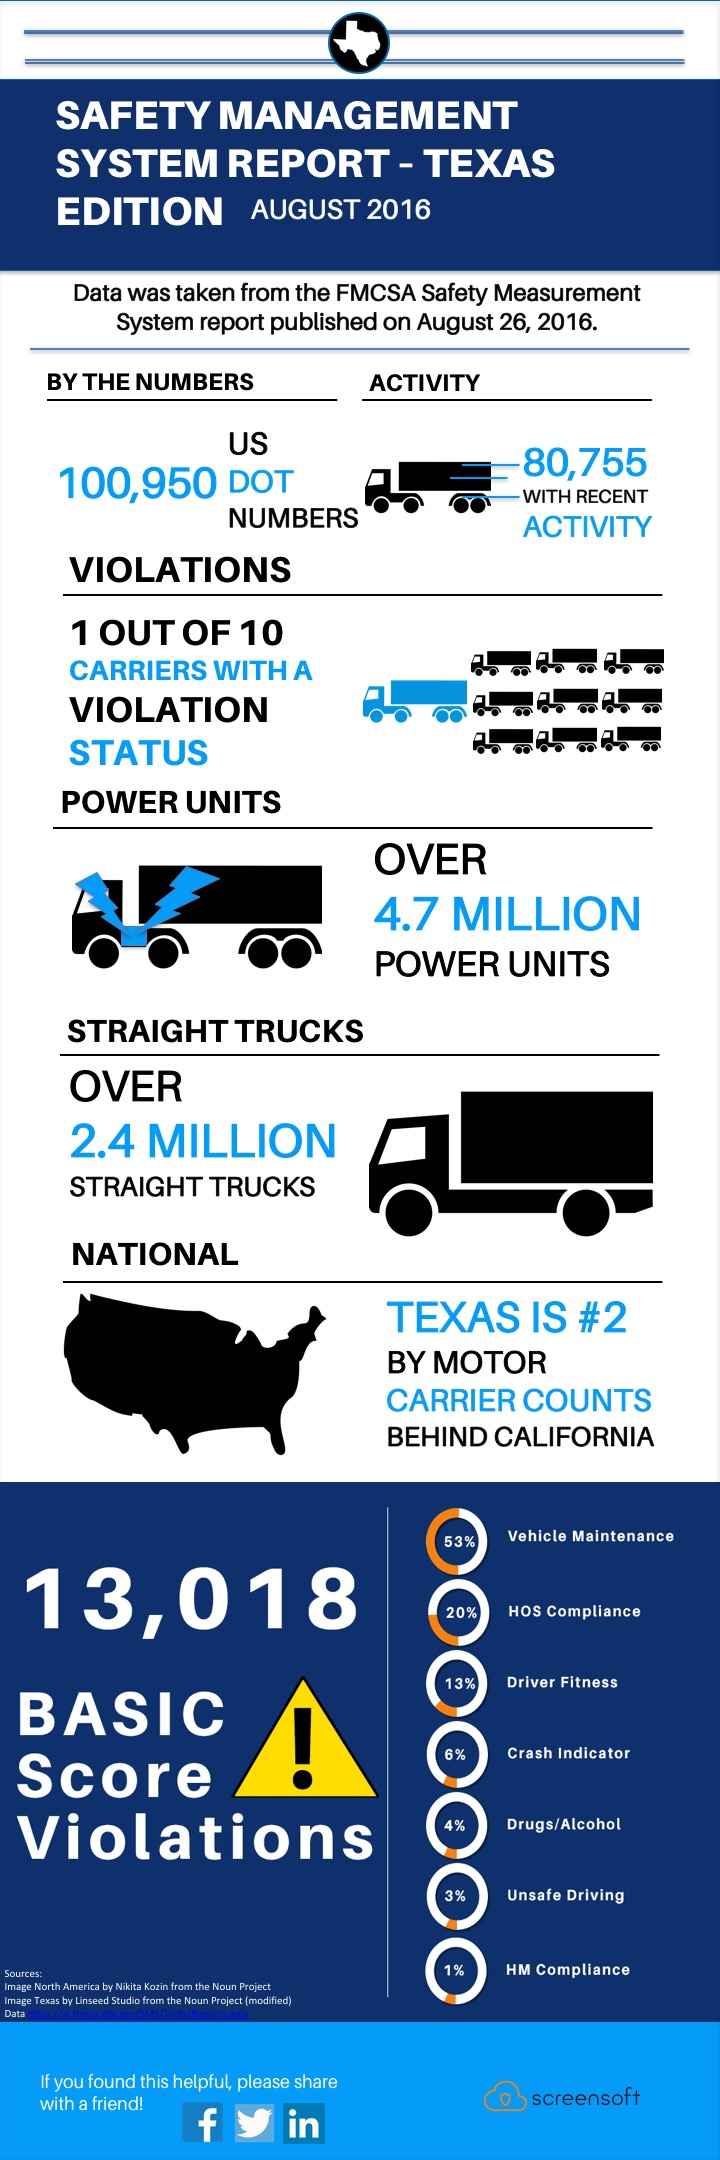 Safety Management System infographic Texas August 2016